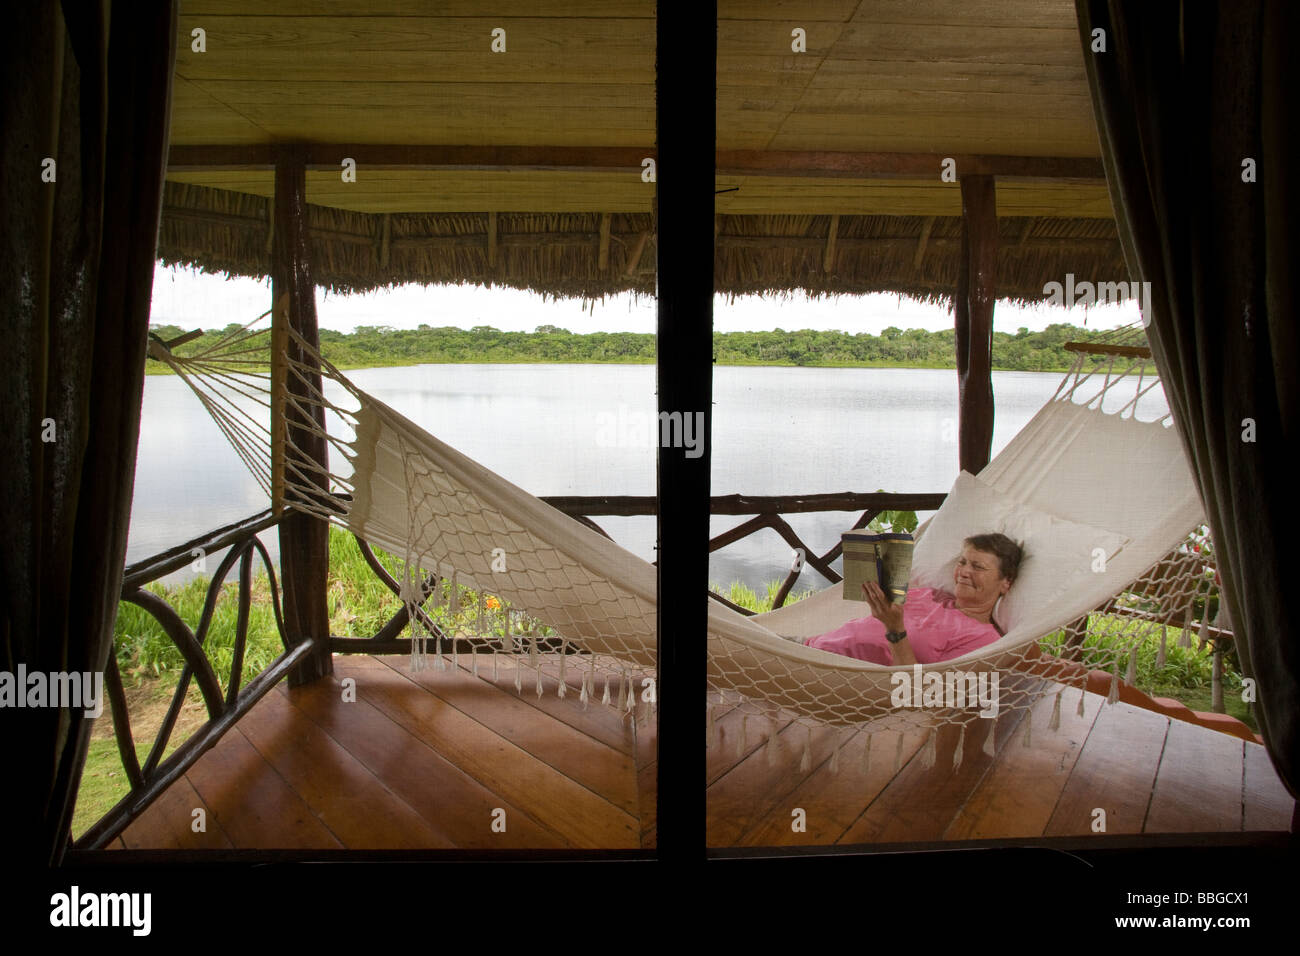 Woman reading in hammock - Napo Wildlife Center - Yasuni National Park, Napo Province, Ecuador - Stock Image